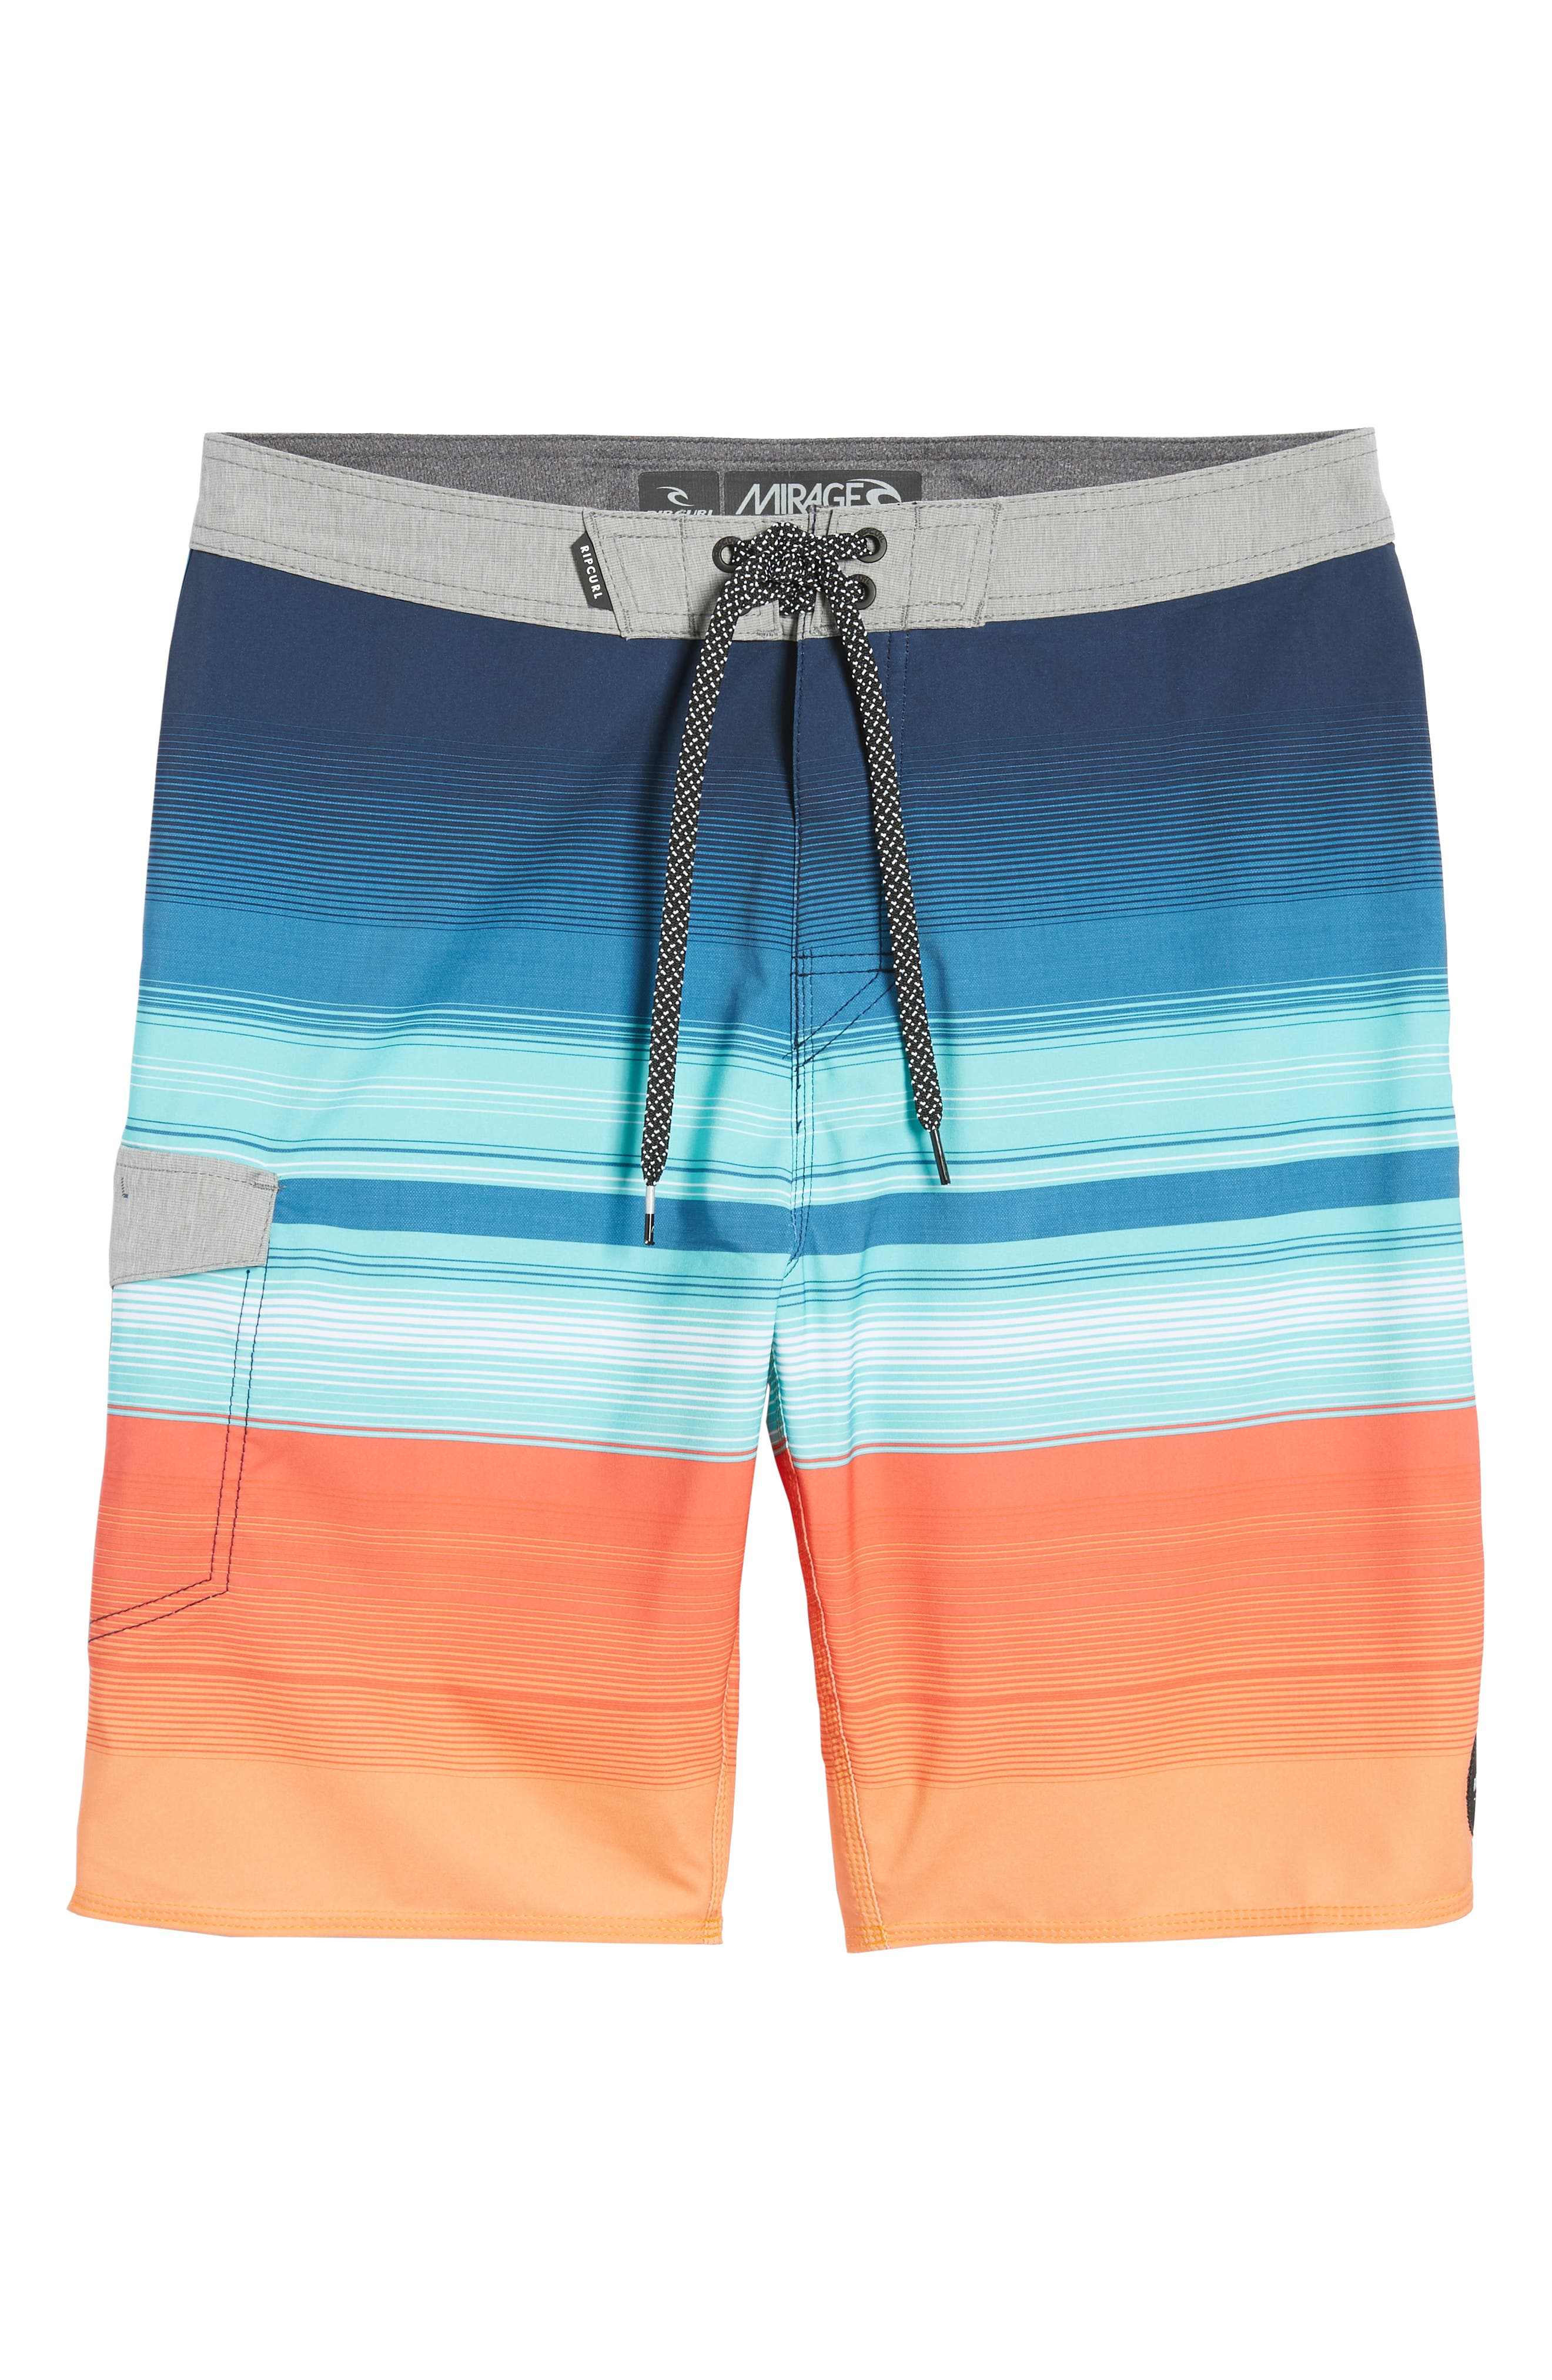 Mirage Accelerate Board Shorts,                             Alternate thumbnail 12, color,